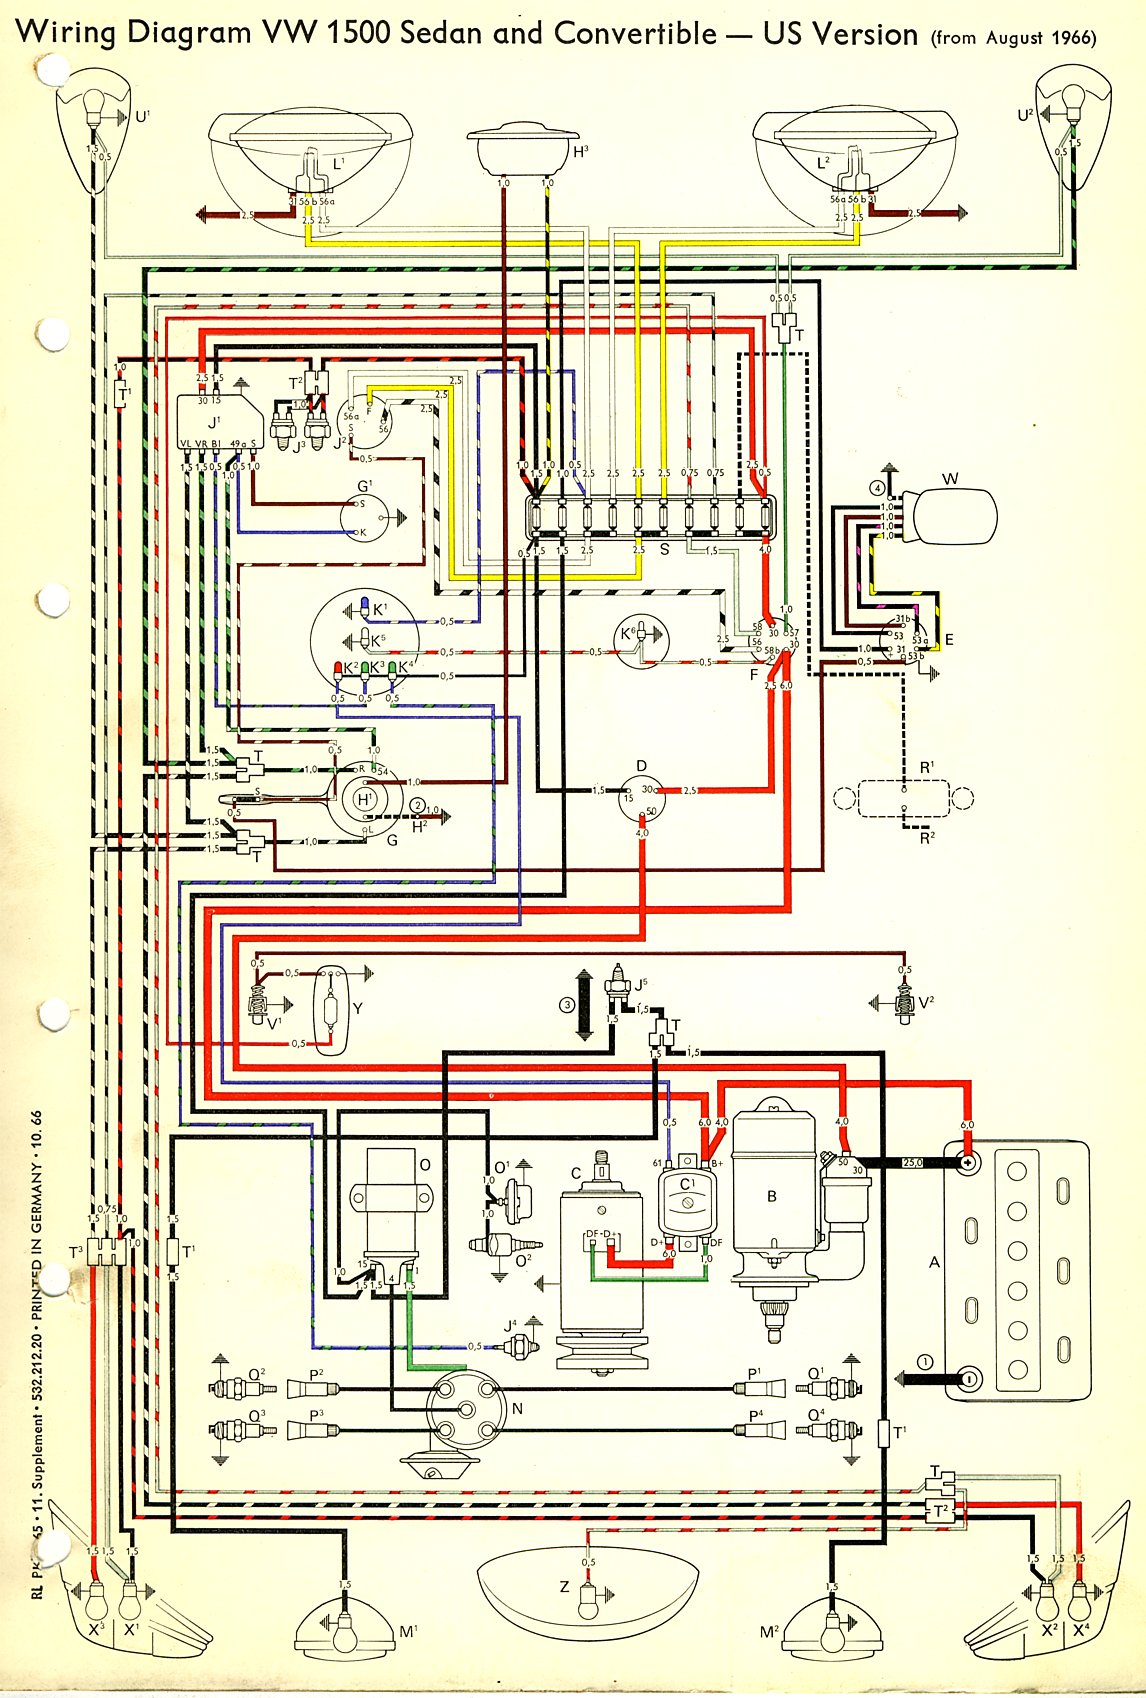 bug_67_USA 67 vw bus wiring diagram pdf 1957 vw wiring diagram \u2022 wiring  at gsmx.co